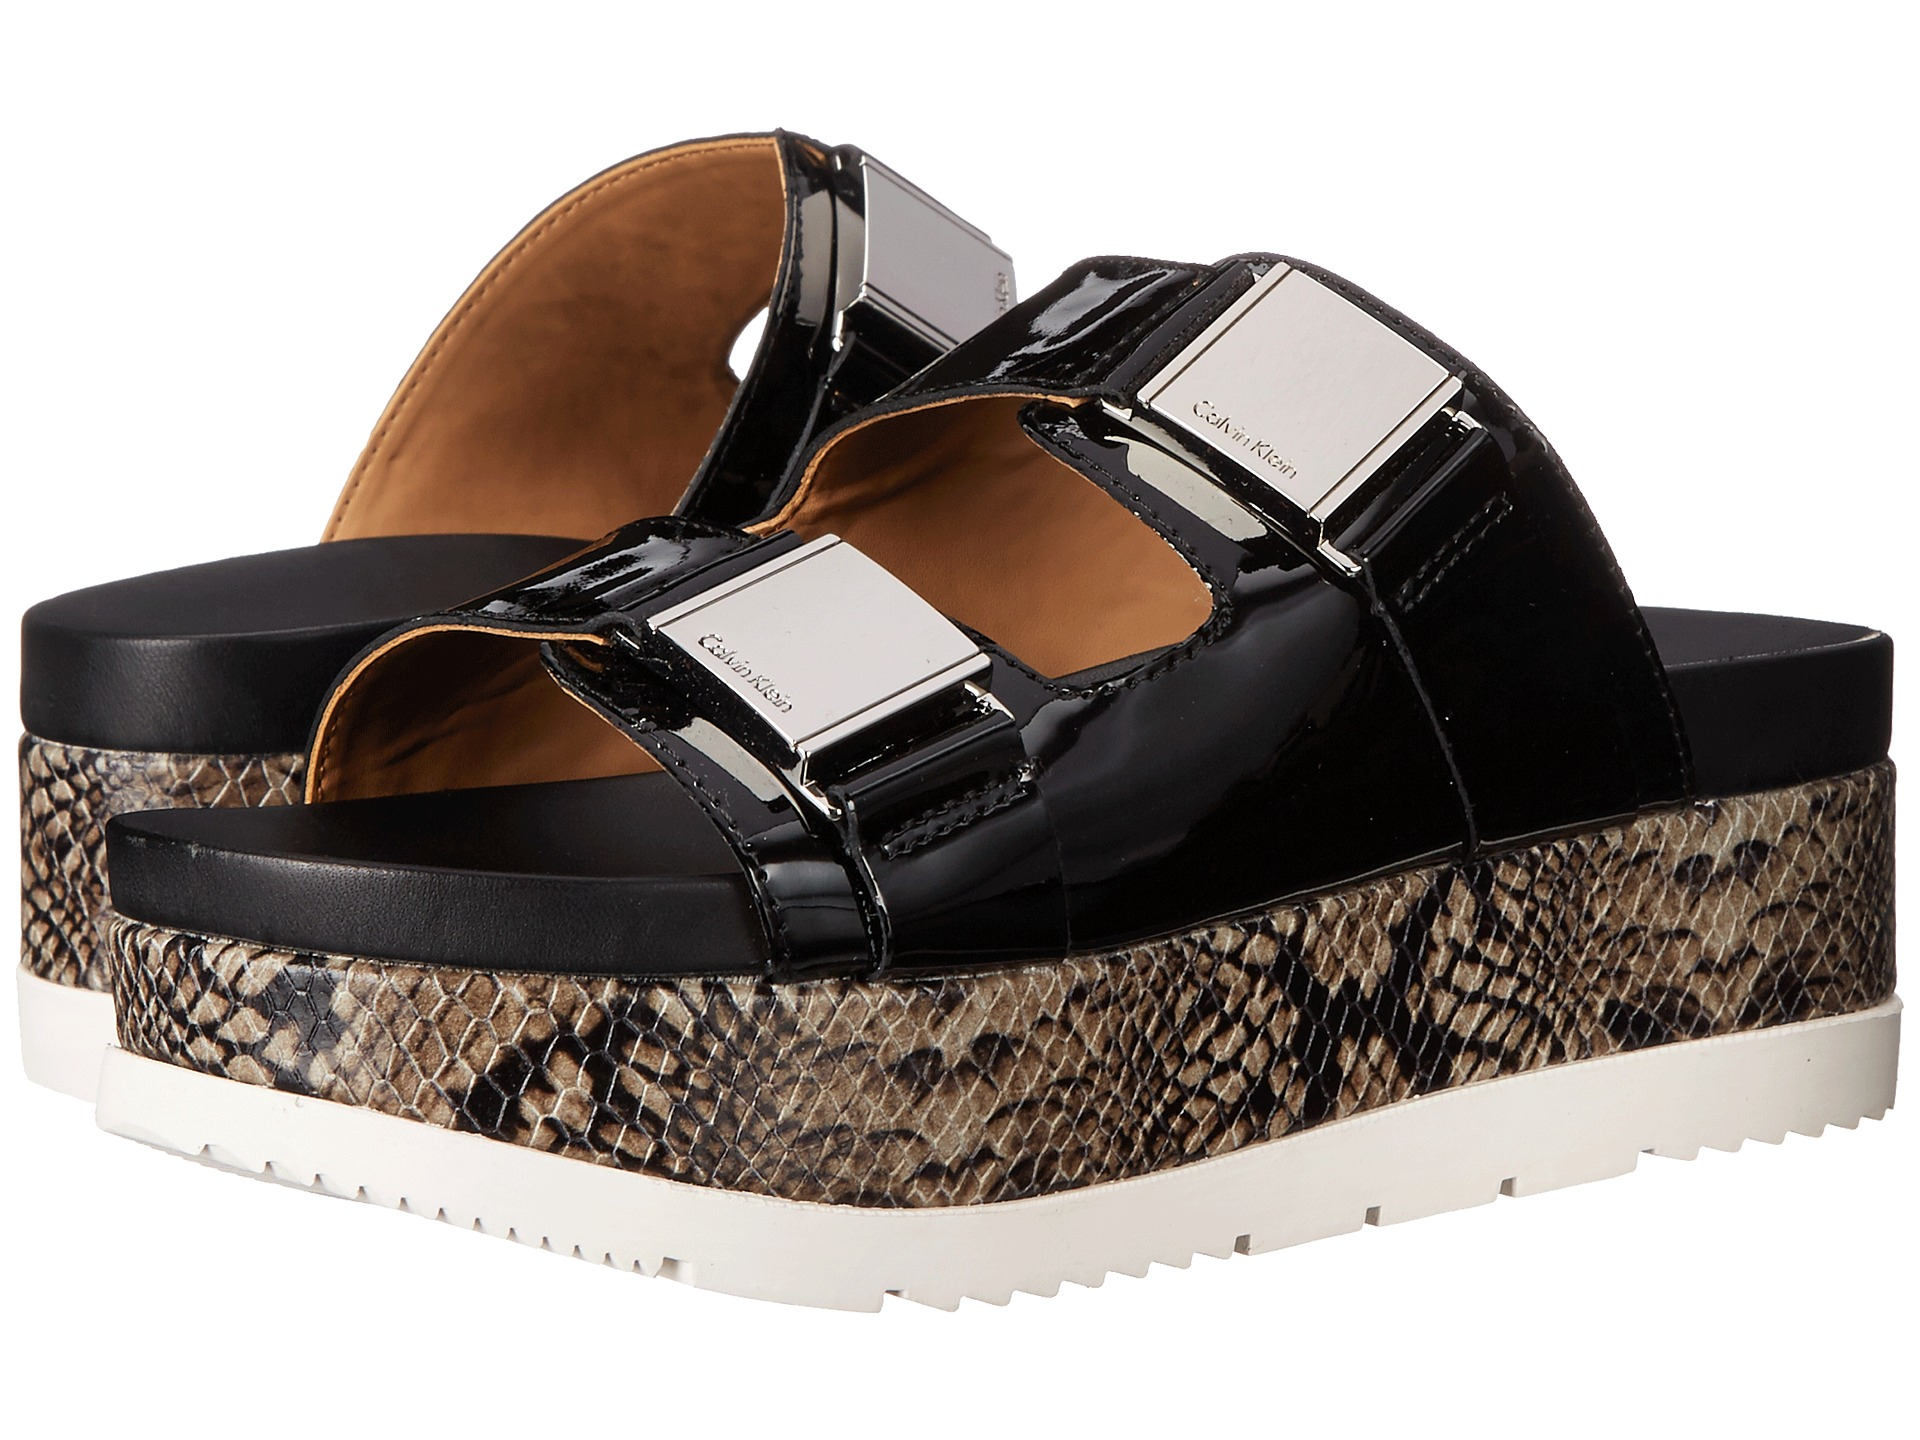 Womens Sandals Calvin Klein Casely Black Patent/Leather